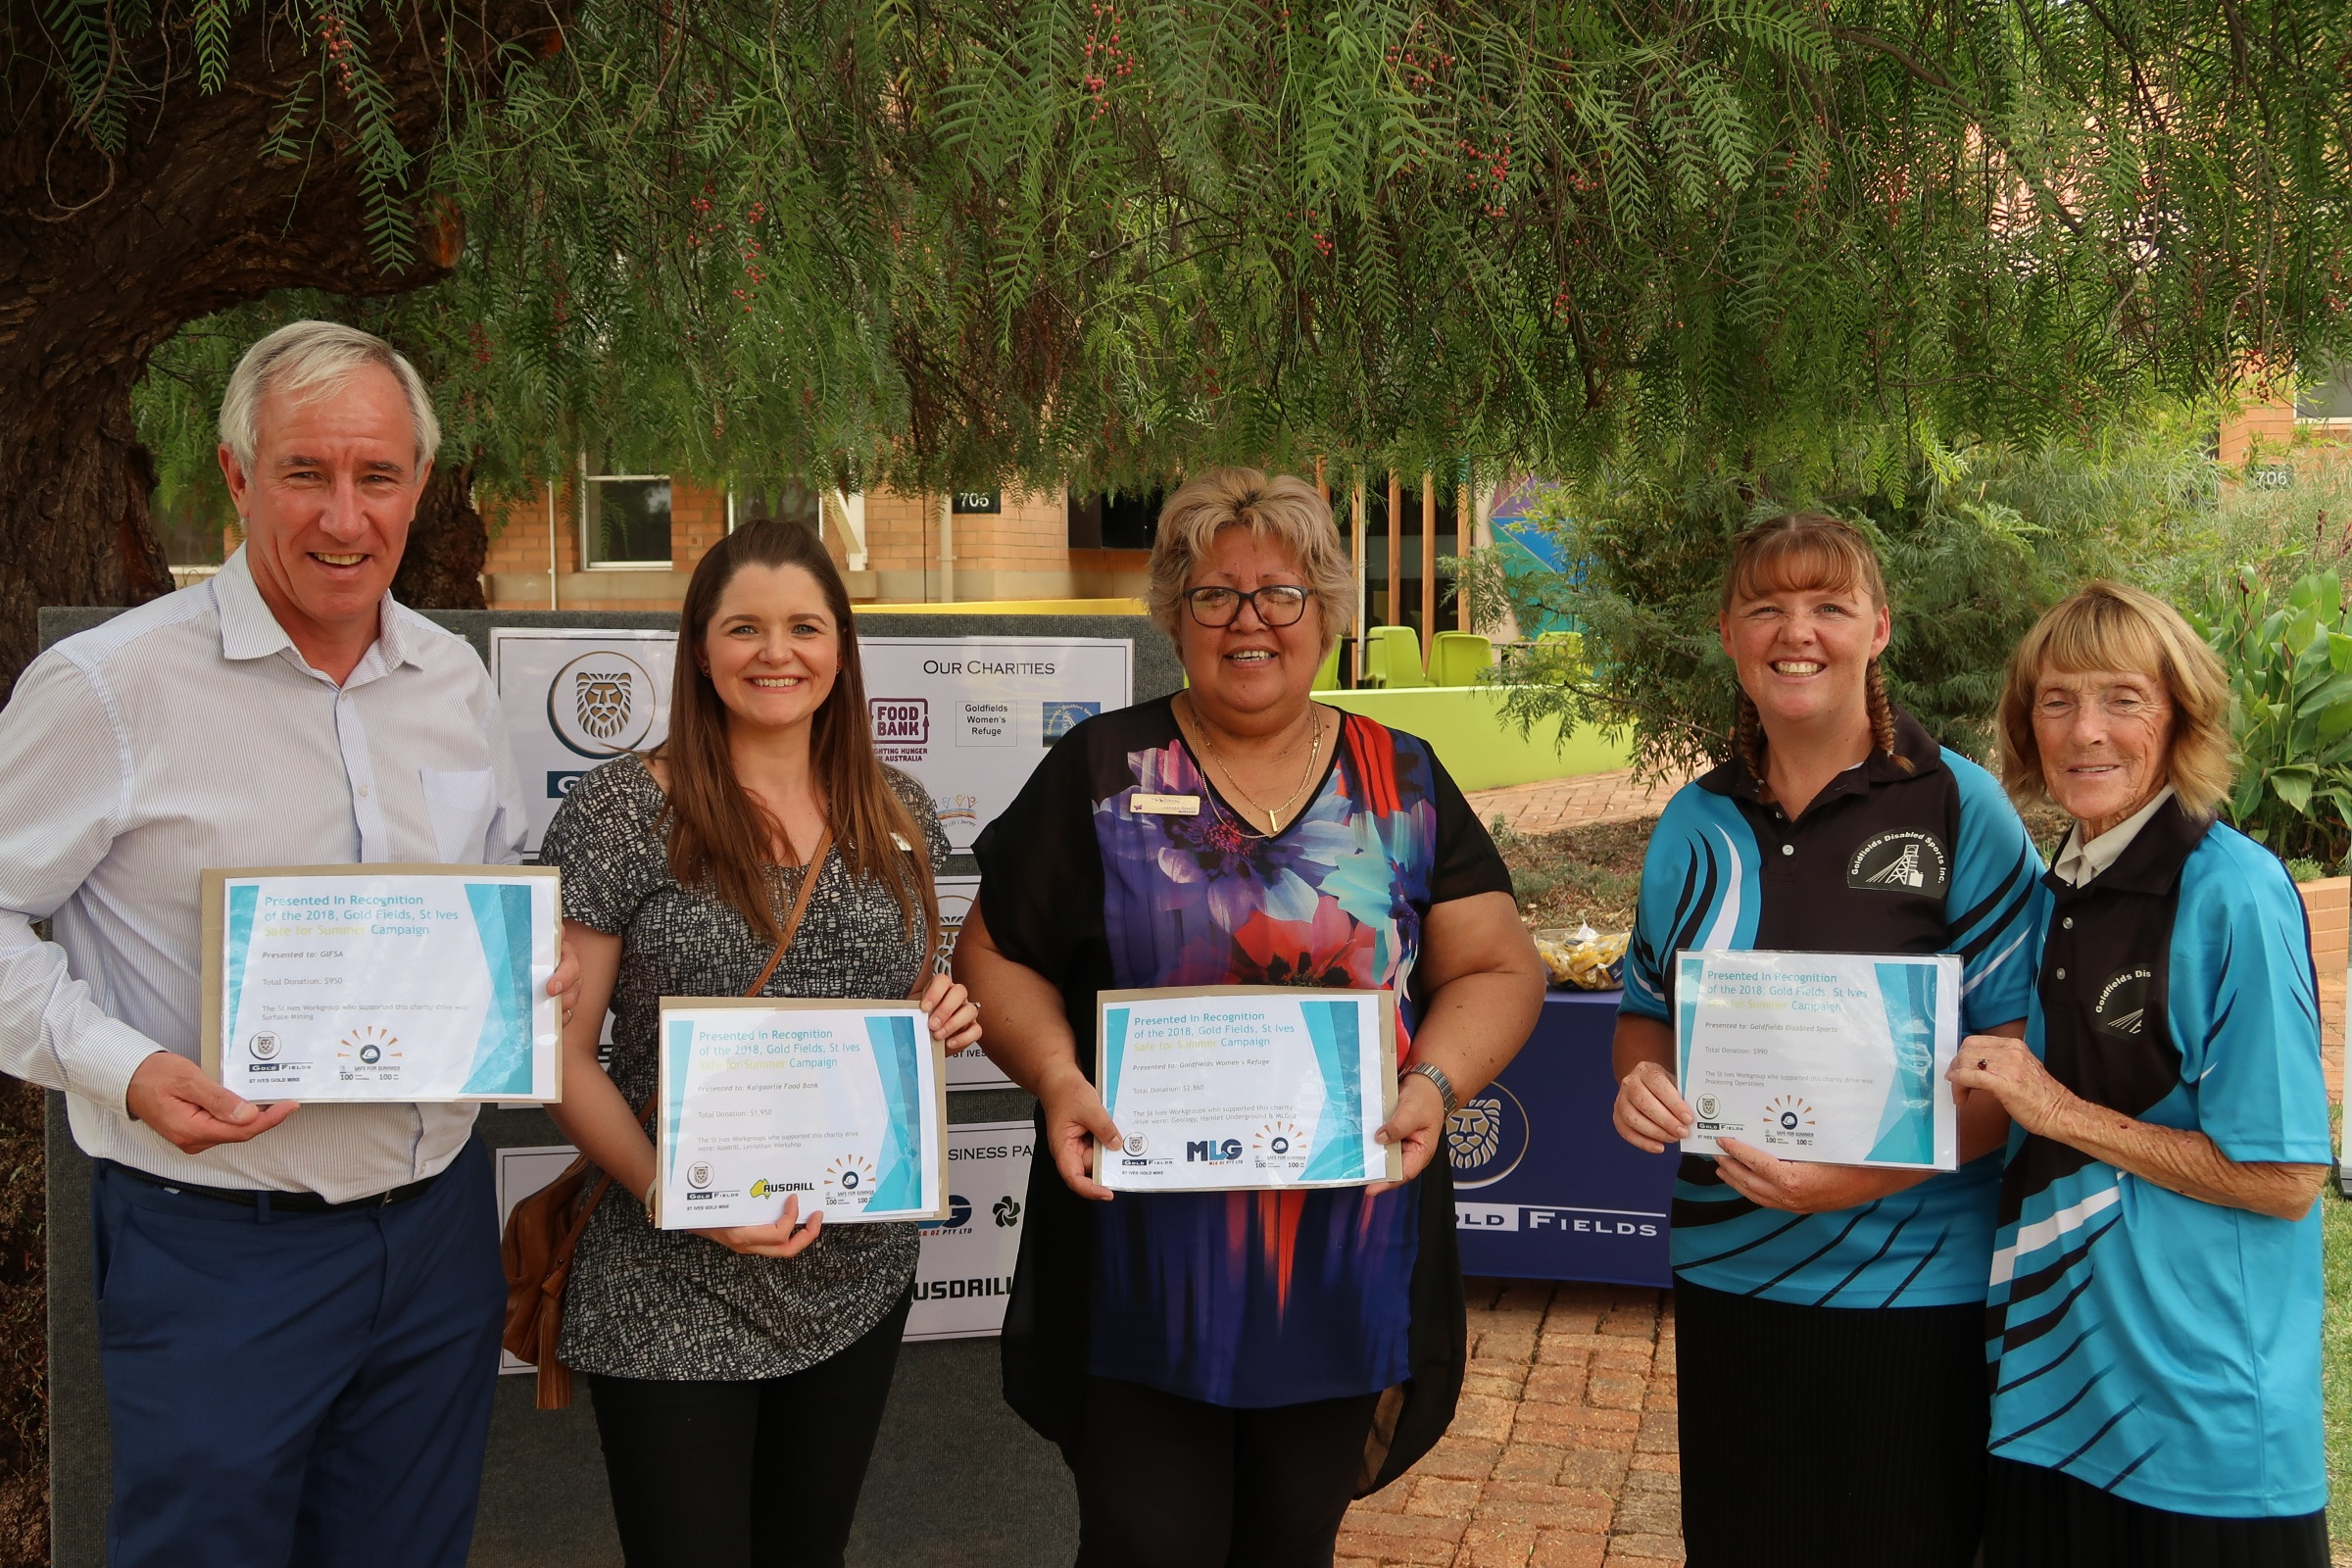 (L-R) Charity recipients: Robert from GIFSA, Debora from Kalgoorlie Food Bank, Jacqui from Goldfields Women's Refuge and Erin and Pat from the Goldfields Disability Sports Association.